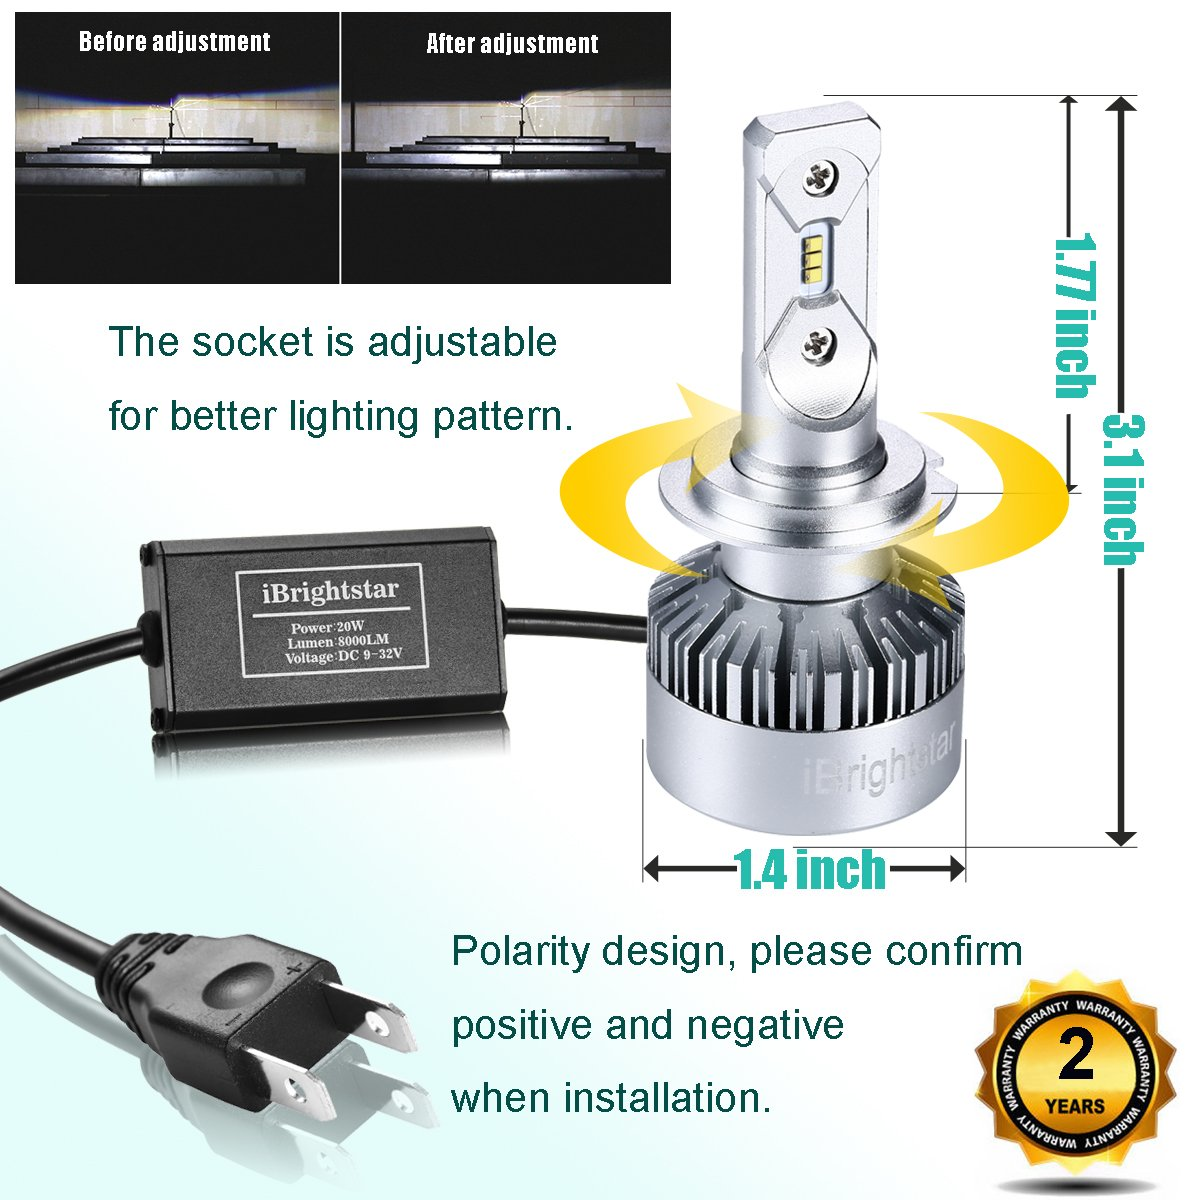 2 Yr Warranty ZES 8,000lm 6000K Cool White iBrightstar H7 LED Headlight Bulbs Conversion Kit